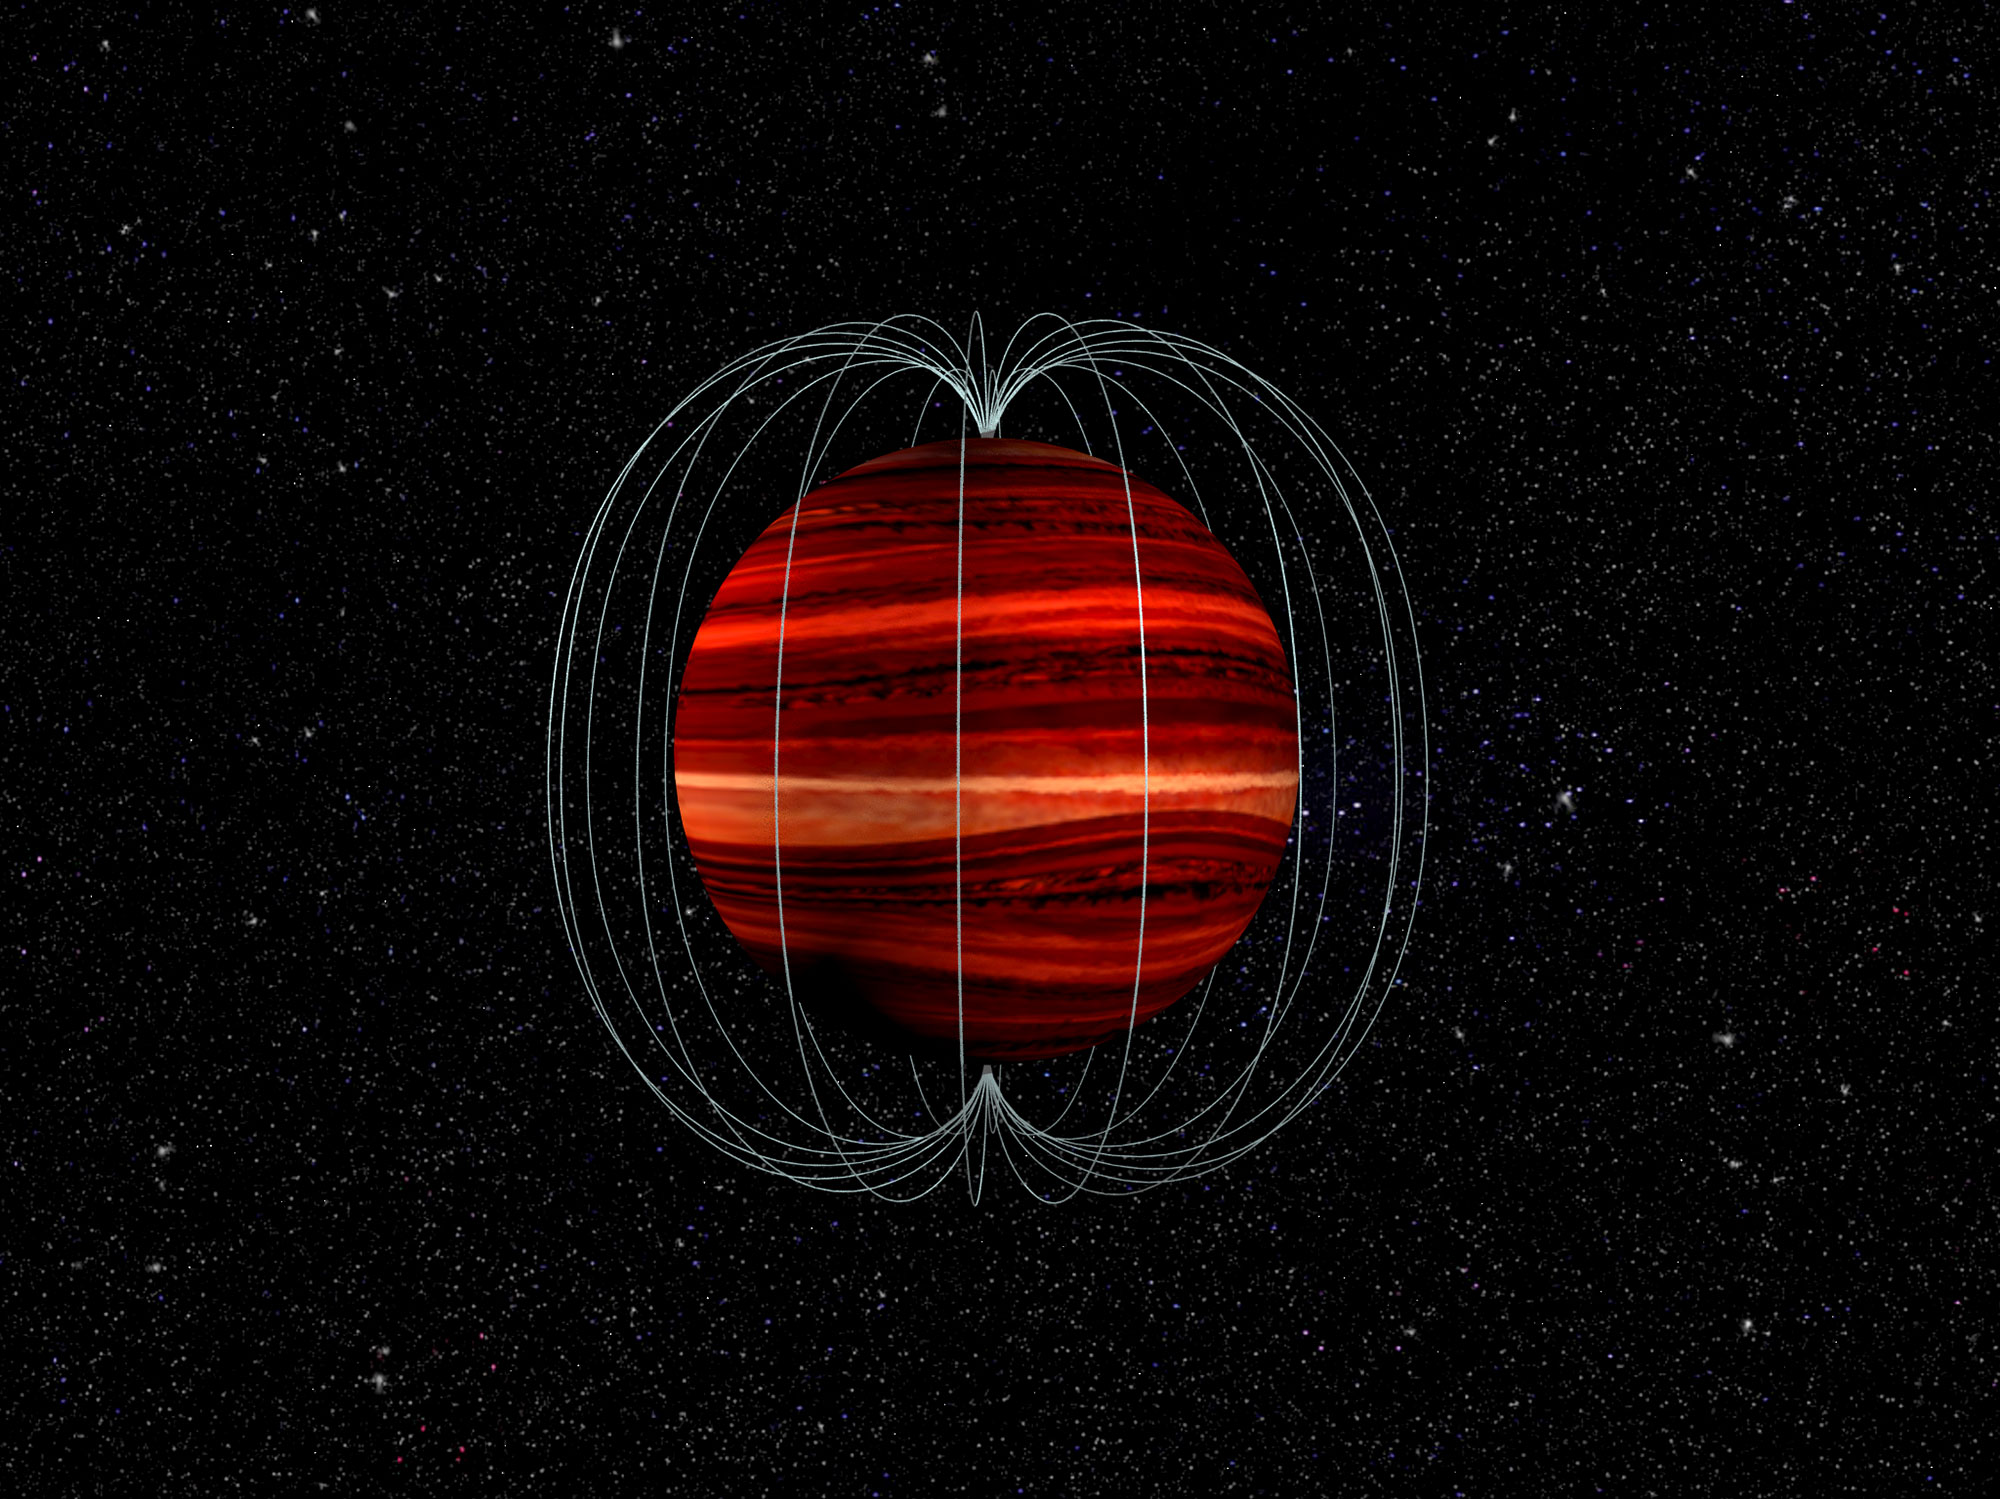 Brown Dwarf and its Magnetic Field